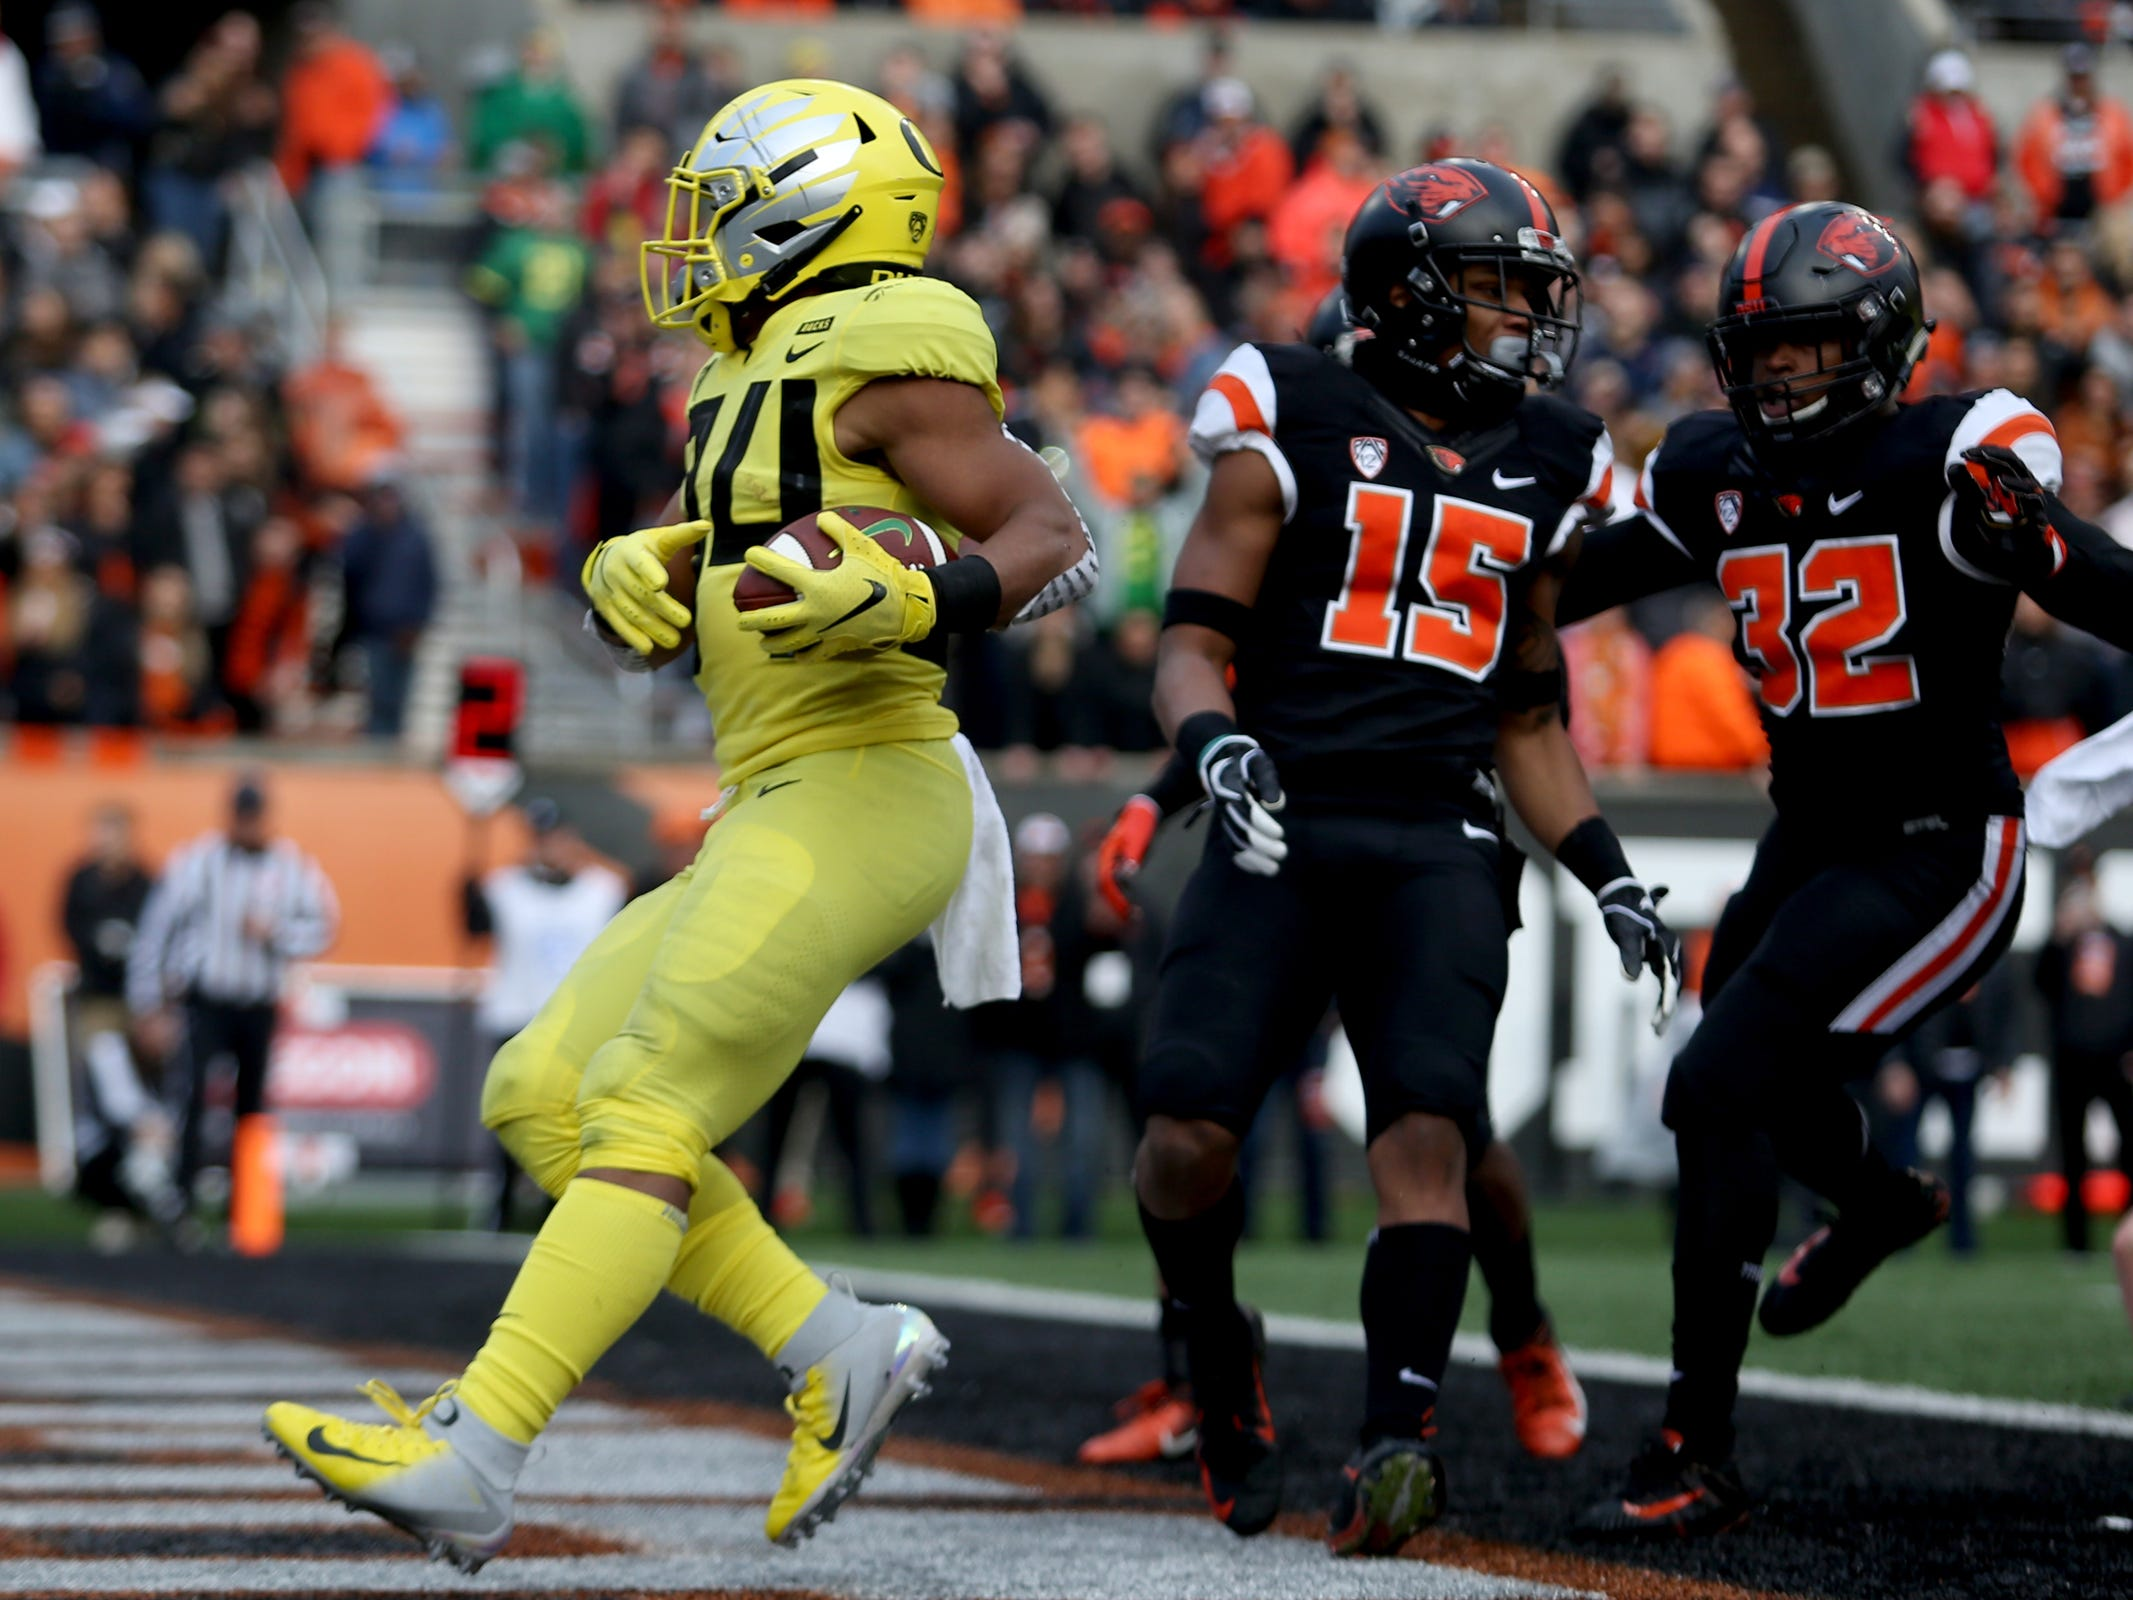 Oregon's CJ Verdell (34) runs in for a touchdown in the Oregon vs. Oregon State Civil war football game at Oregon State University in Corvallis on Friday, Nov. 23, 2018.